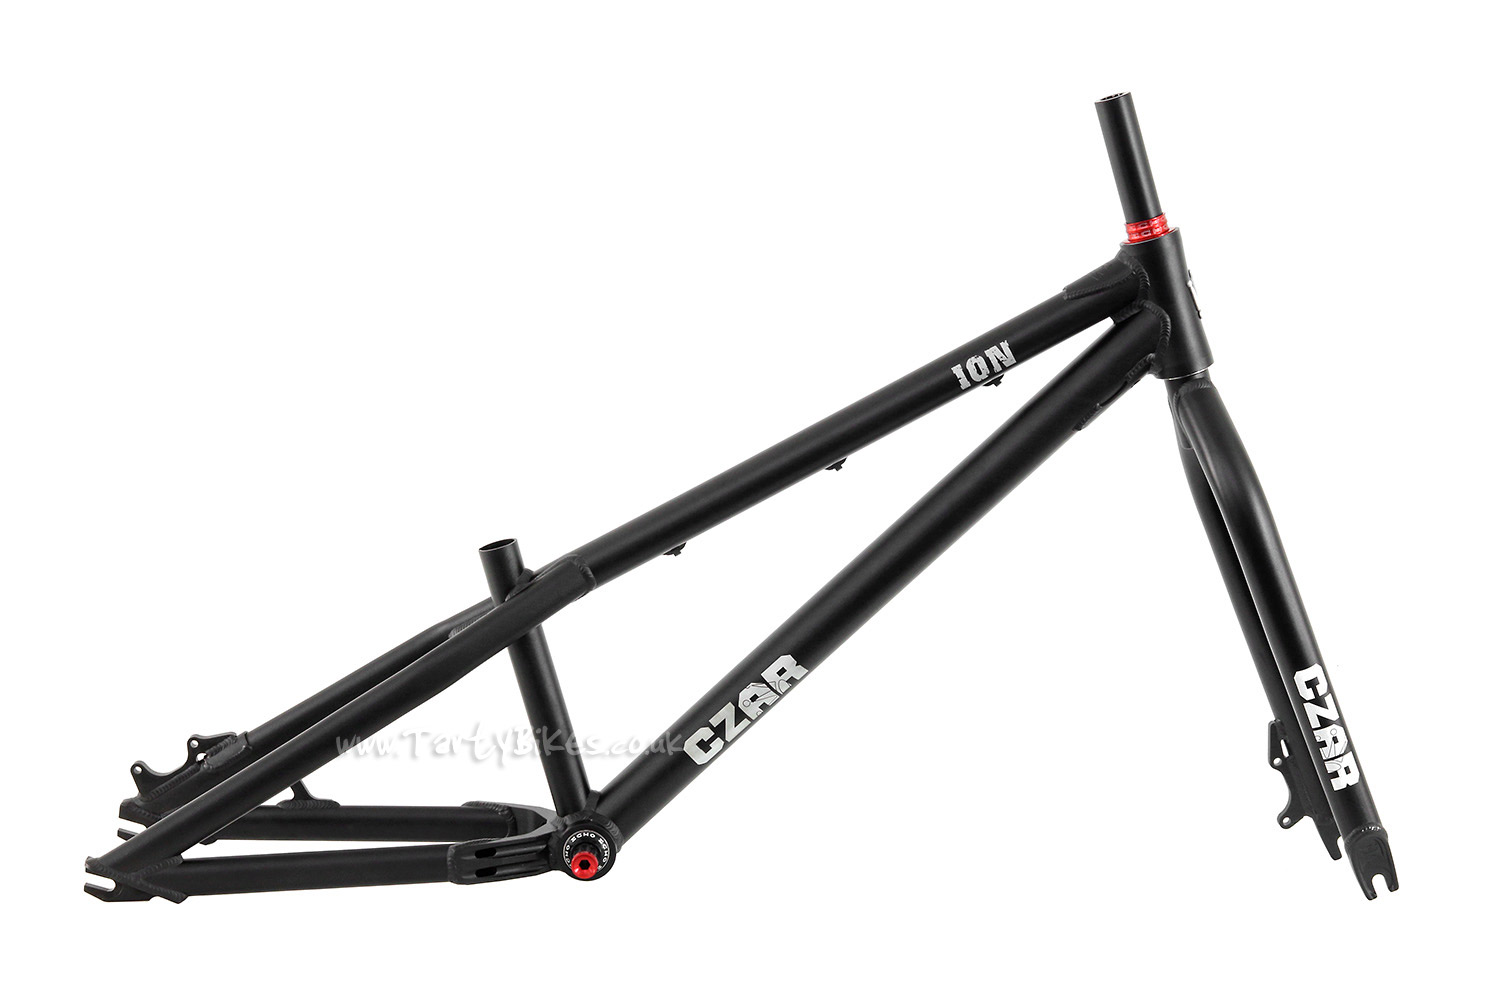 "Czar Ion 24"" Frame Kit"